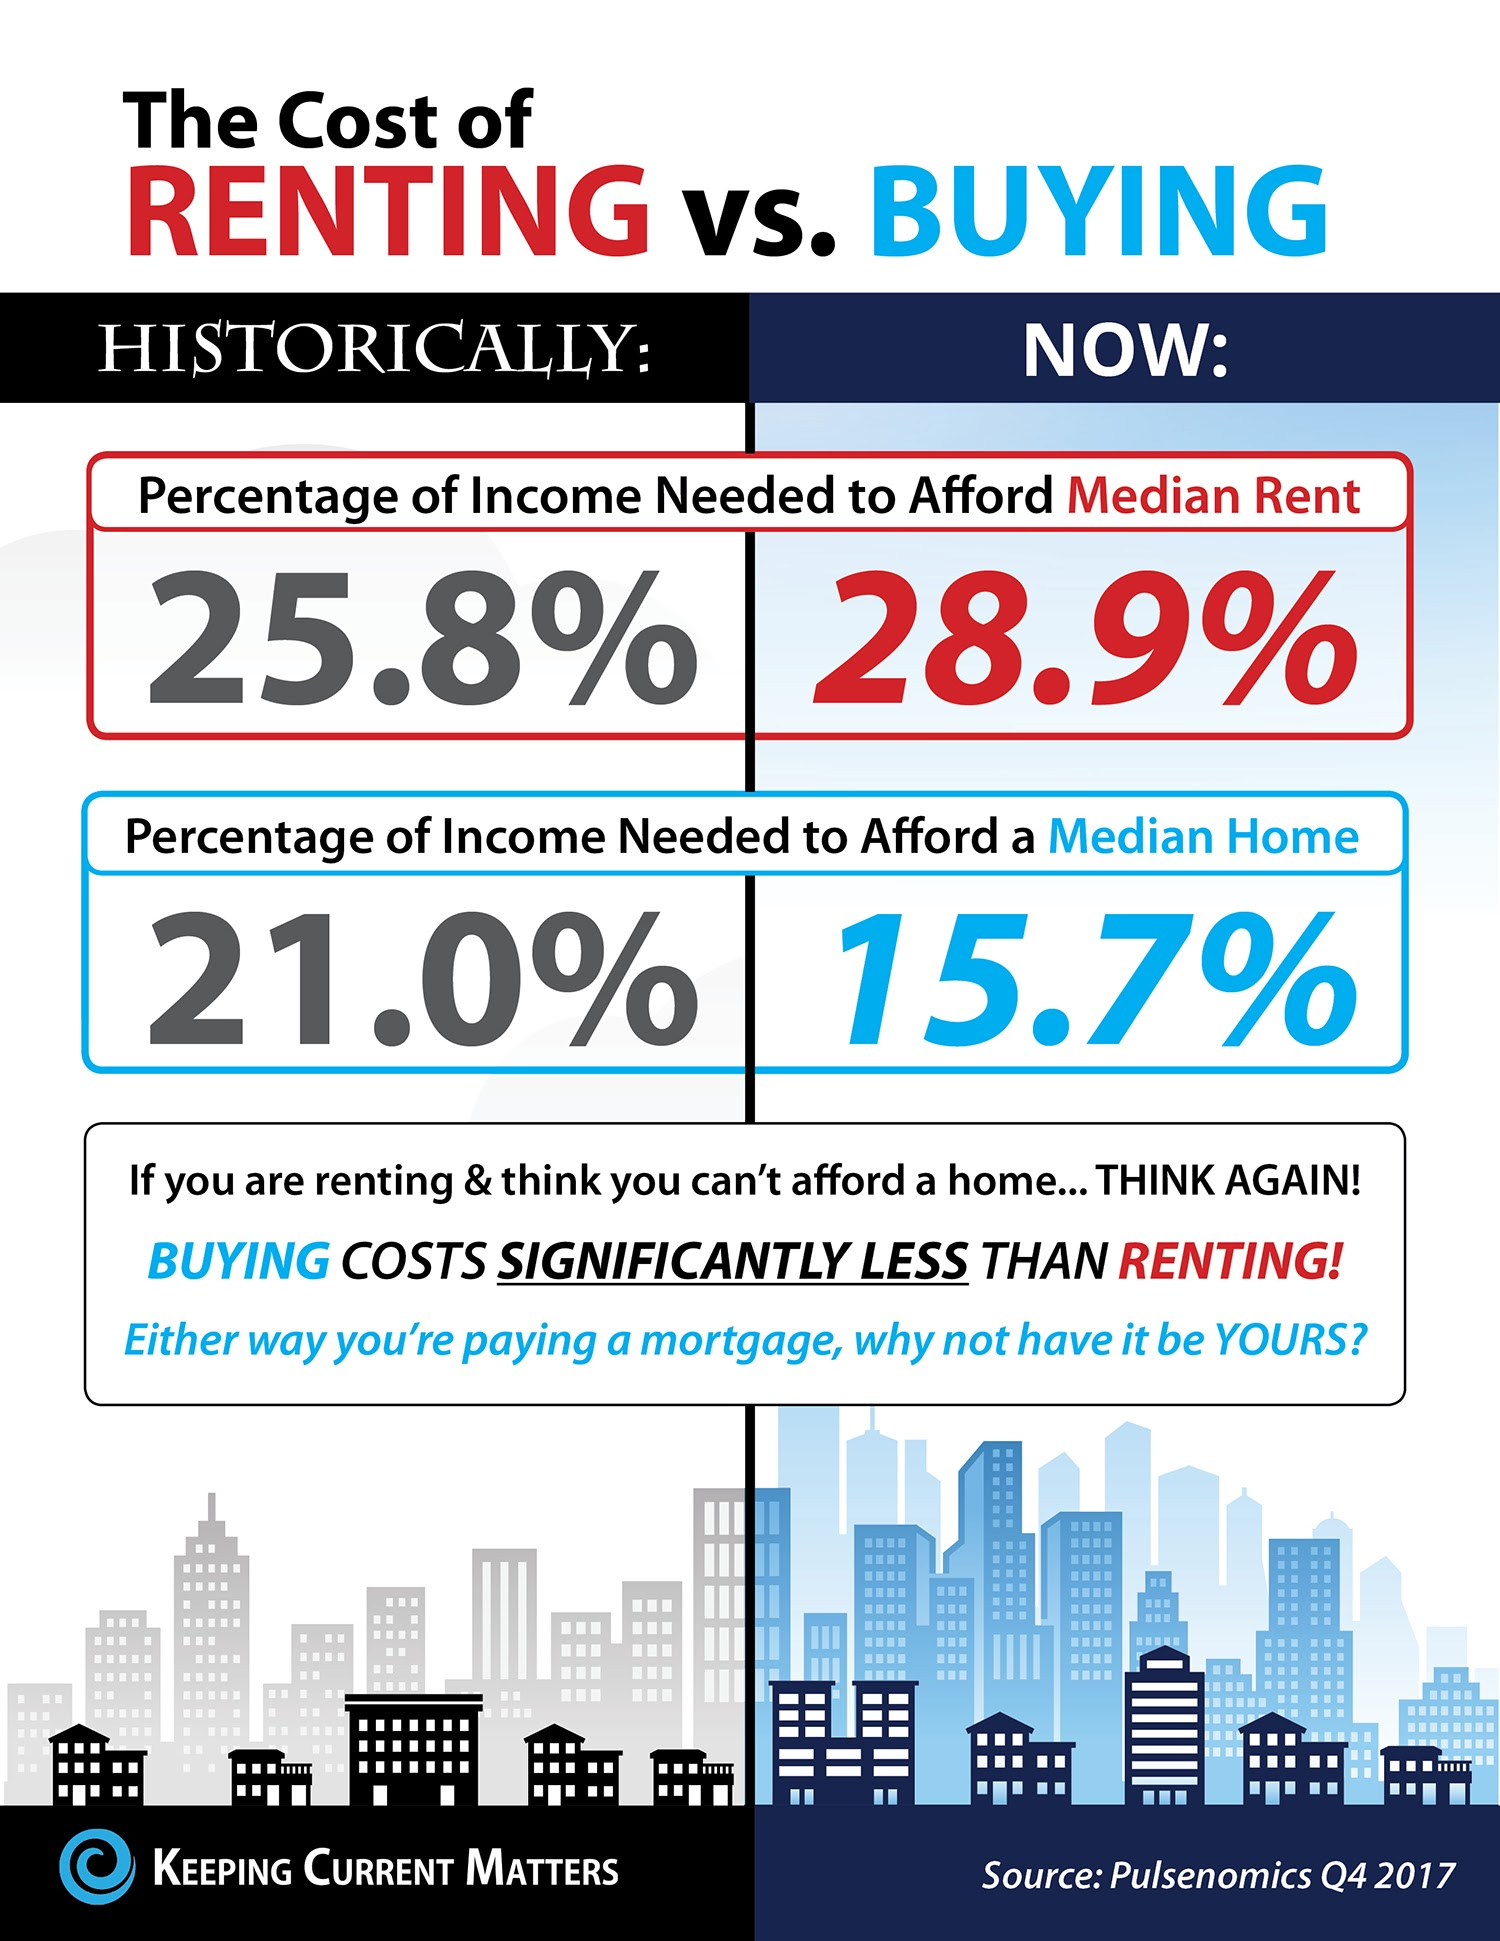 The Cost of Renting vs. Buying Today [INFOGRAPHIC] | Keeping Current Matters